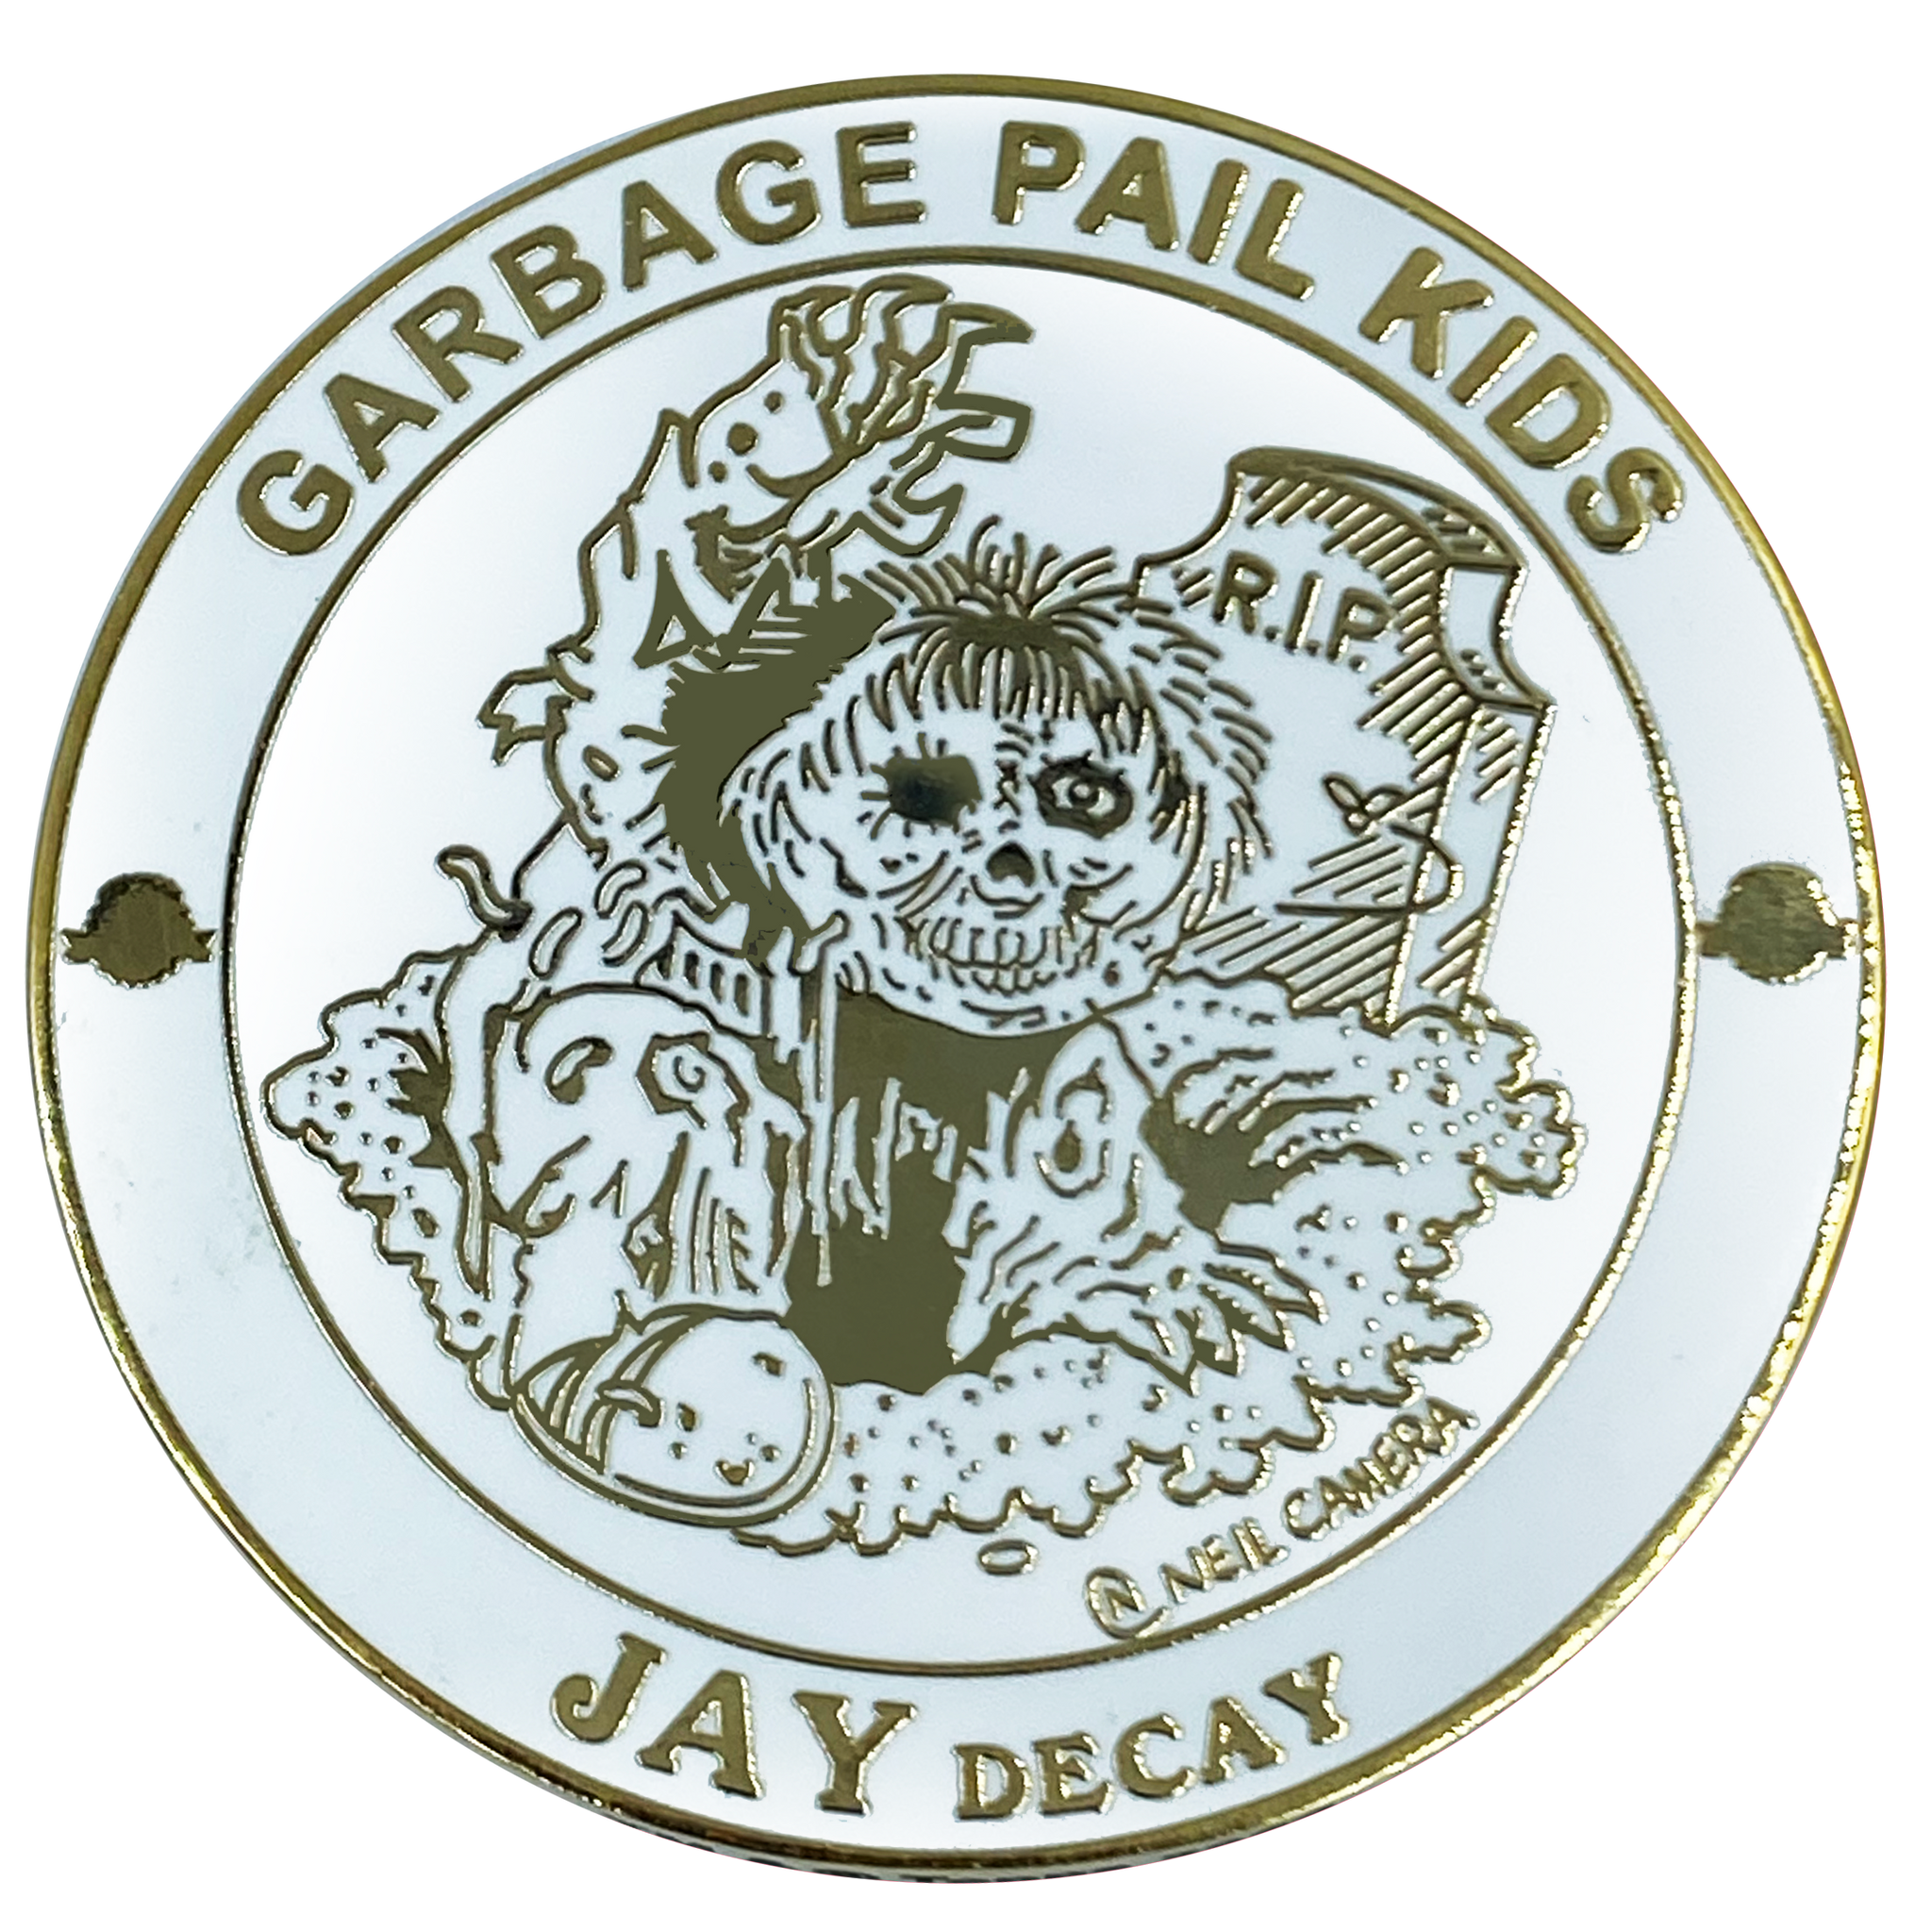 GPK-BB-005 JAY DECAY Topps Officially Licensed Neil Camera Artist Collaboration GPK Challenge Coin Garbage Pail Kids